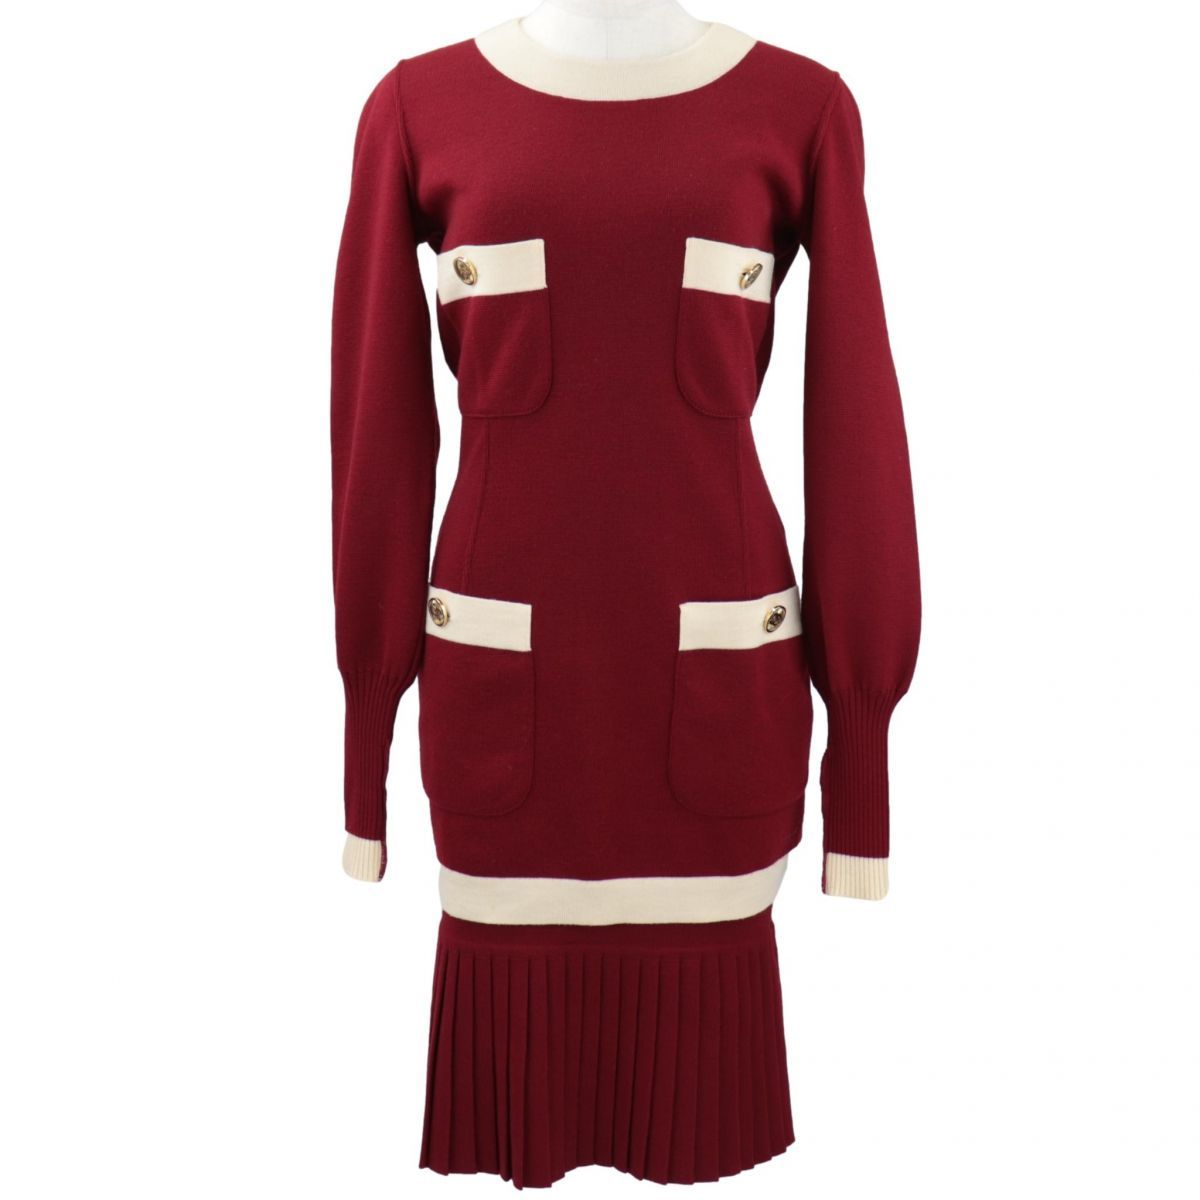 Chanel Vintage Knit Dress Setup Ladies Red Gathered Skirt Coco Mark Button VINTAGE